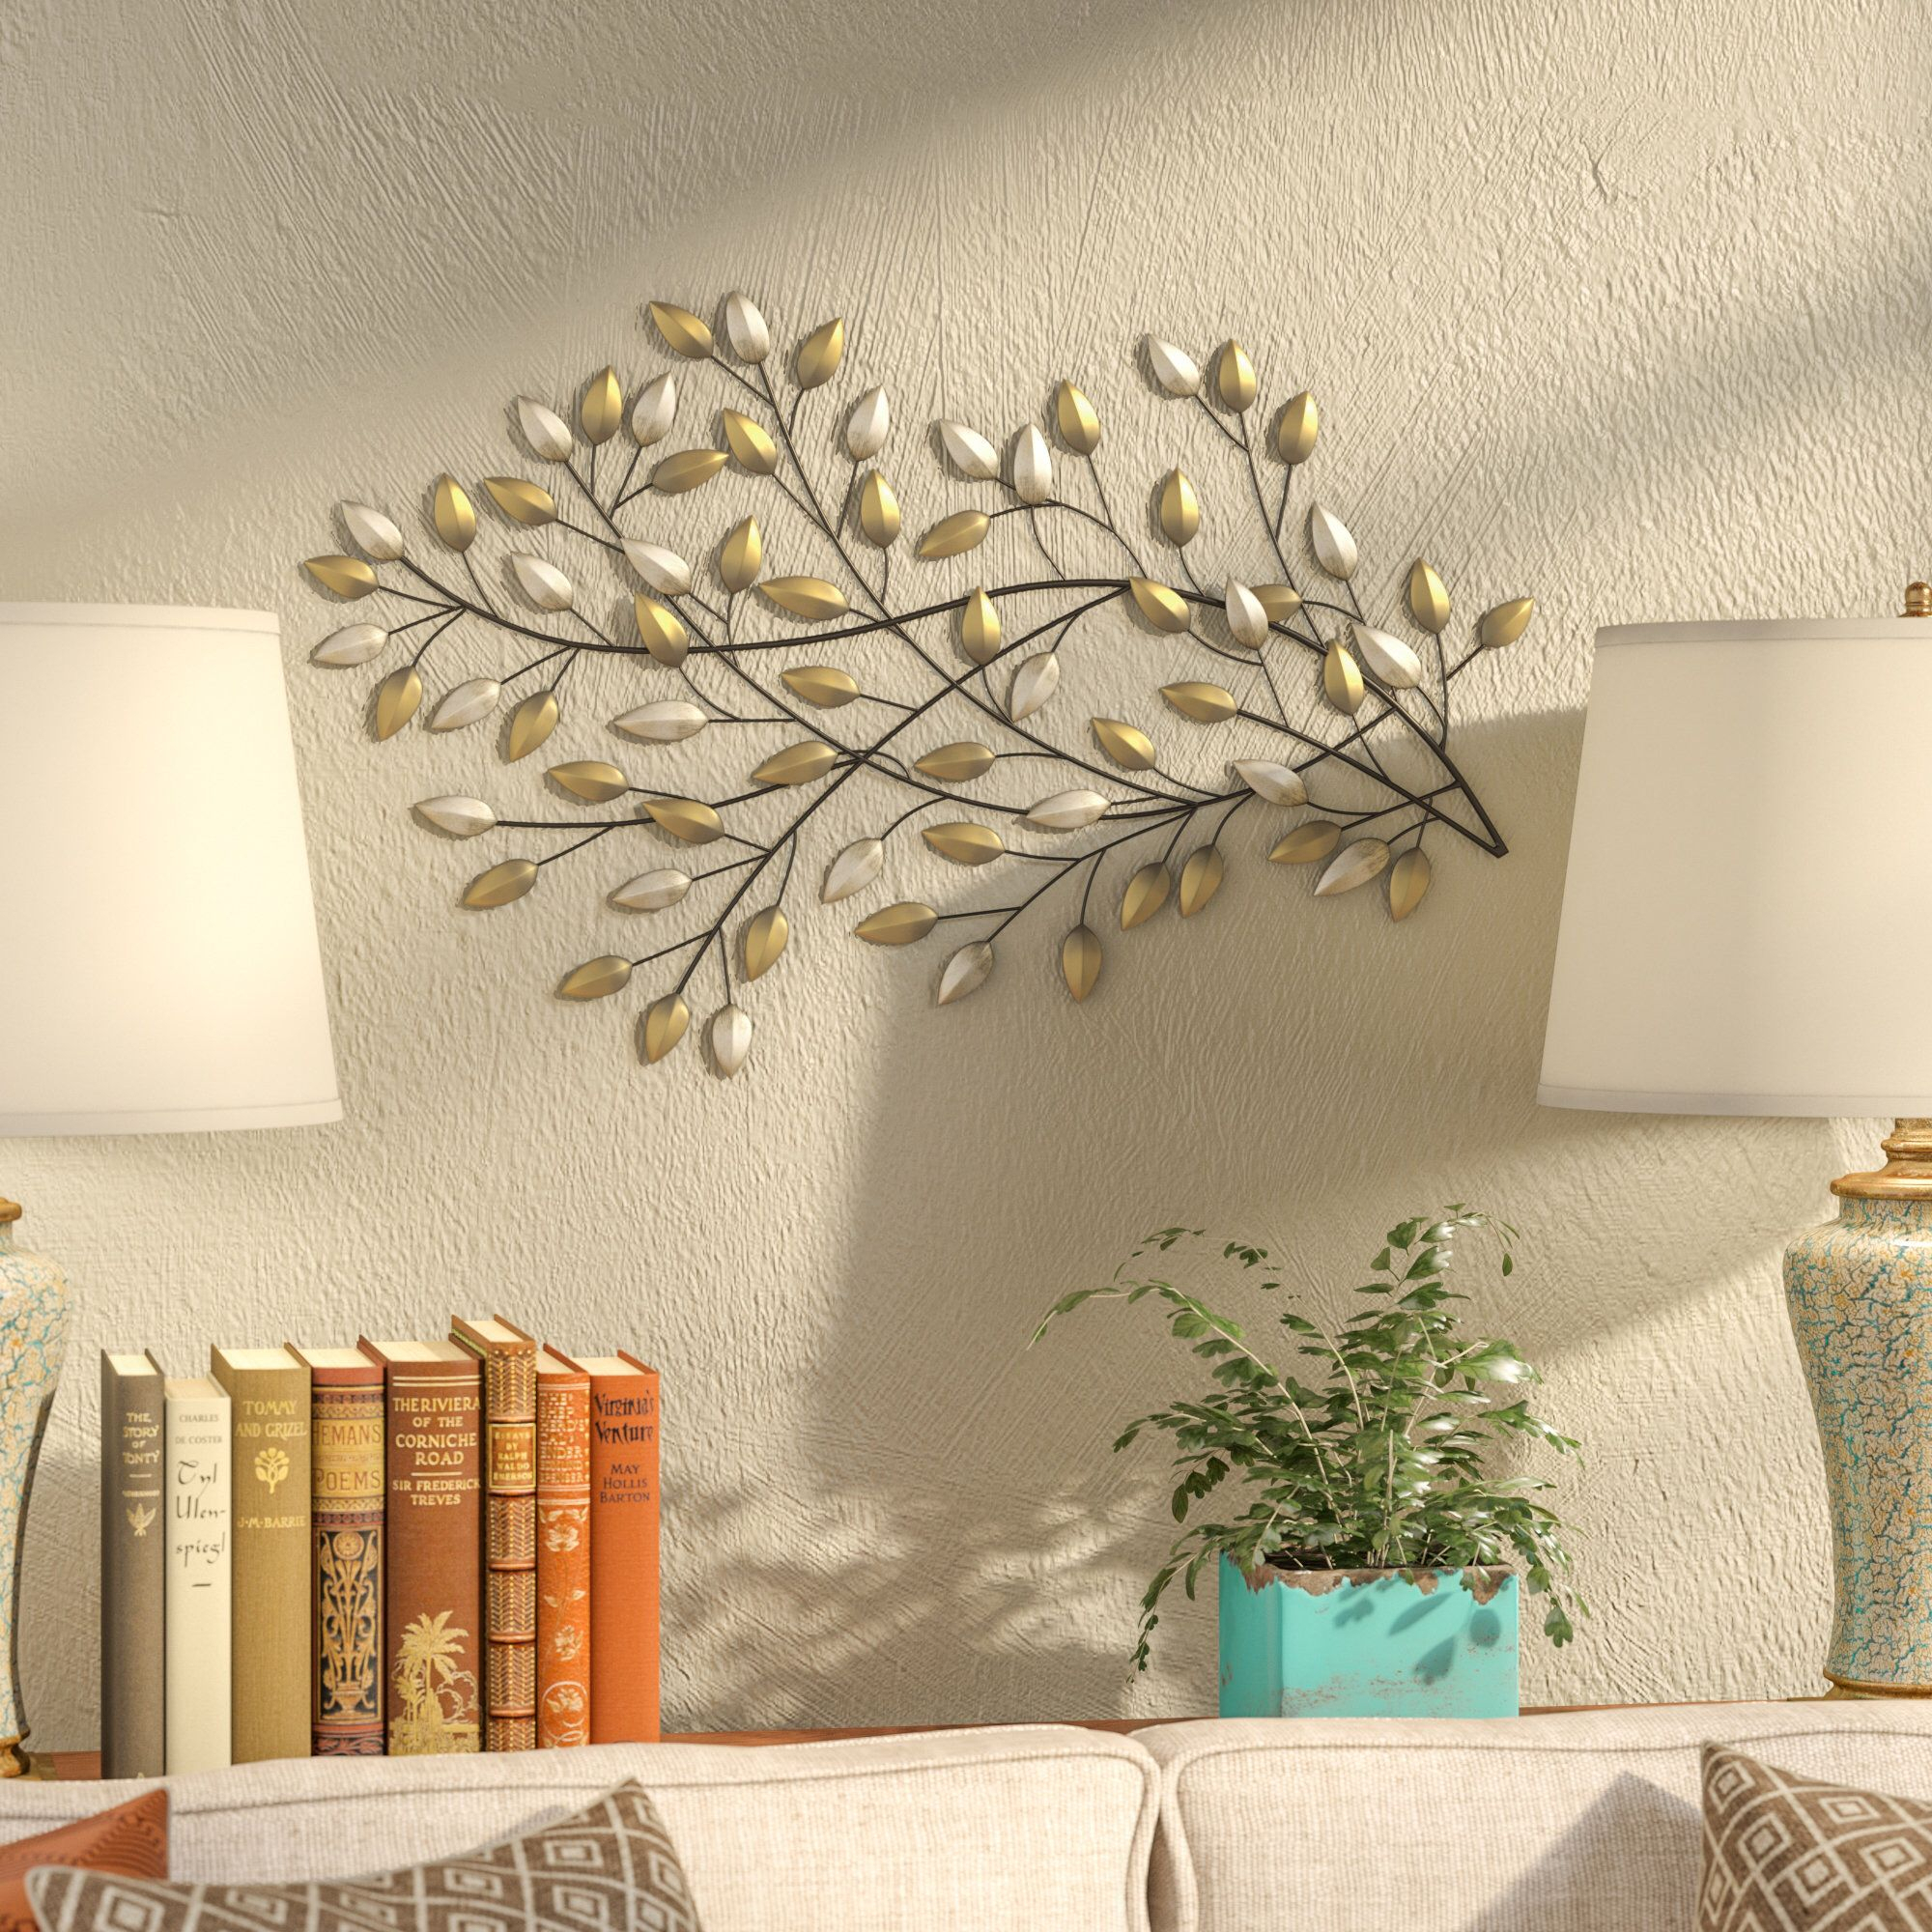 Blowing Leaves Wall Décor | Metal Wall Art | Tuscan Regarding Blowing Leaves Wall Decor (View 2 of 30)